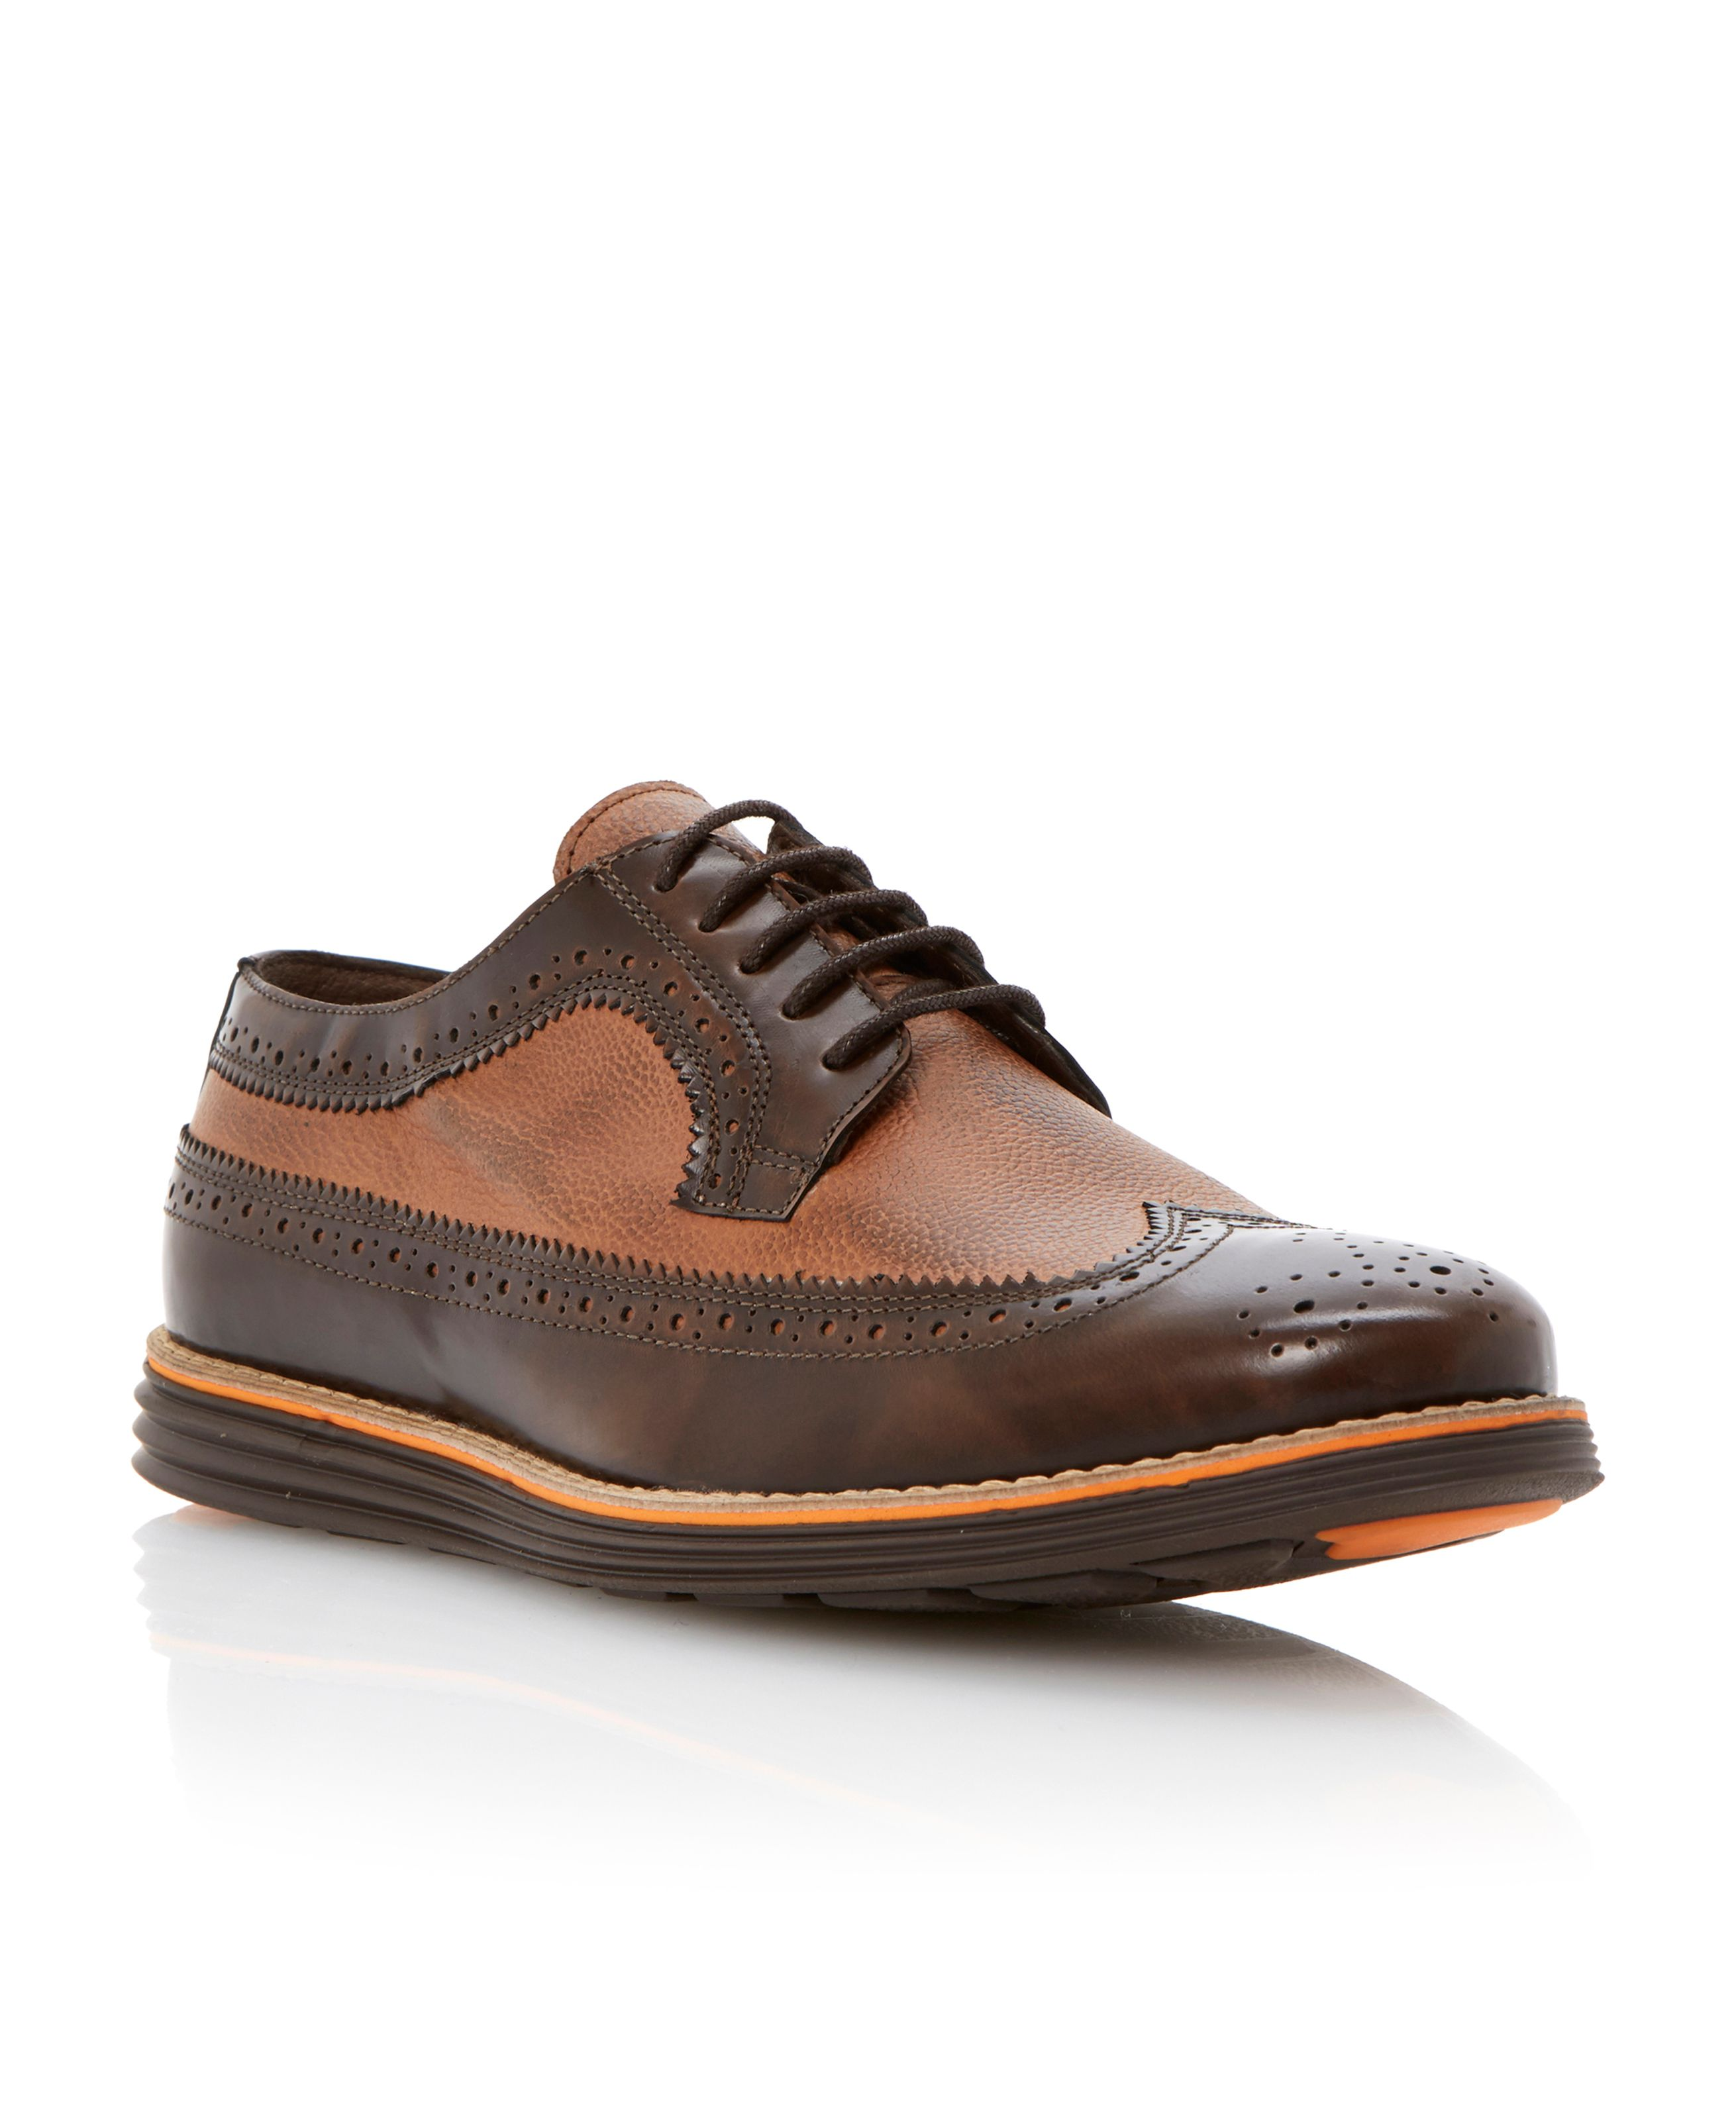 Bayswaters two tone brogue sporty so